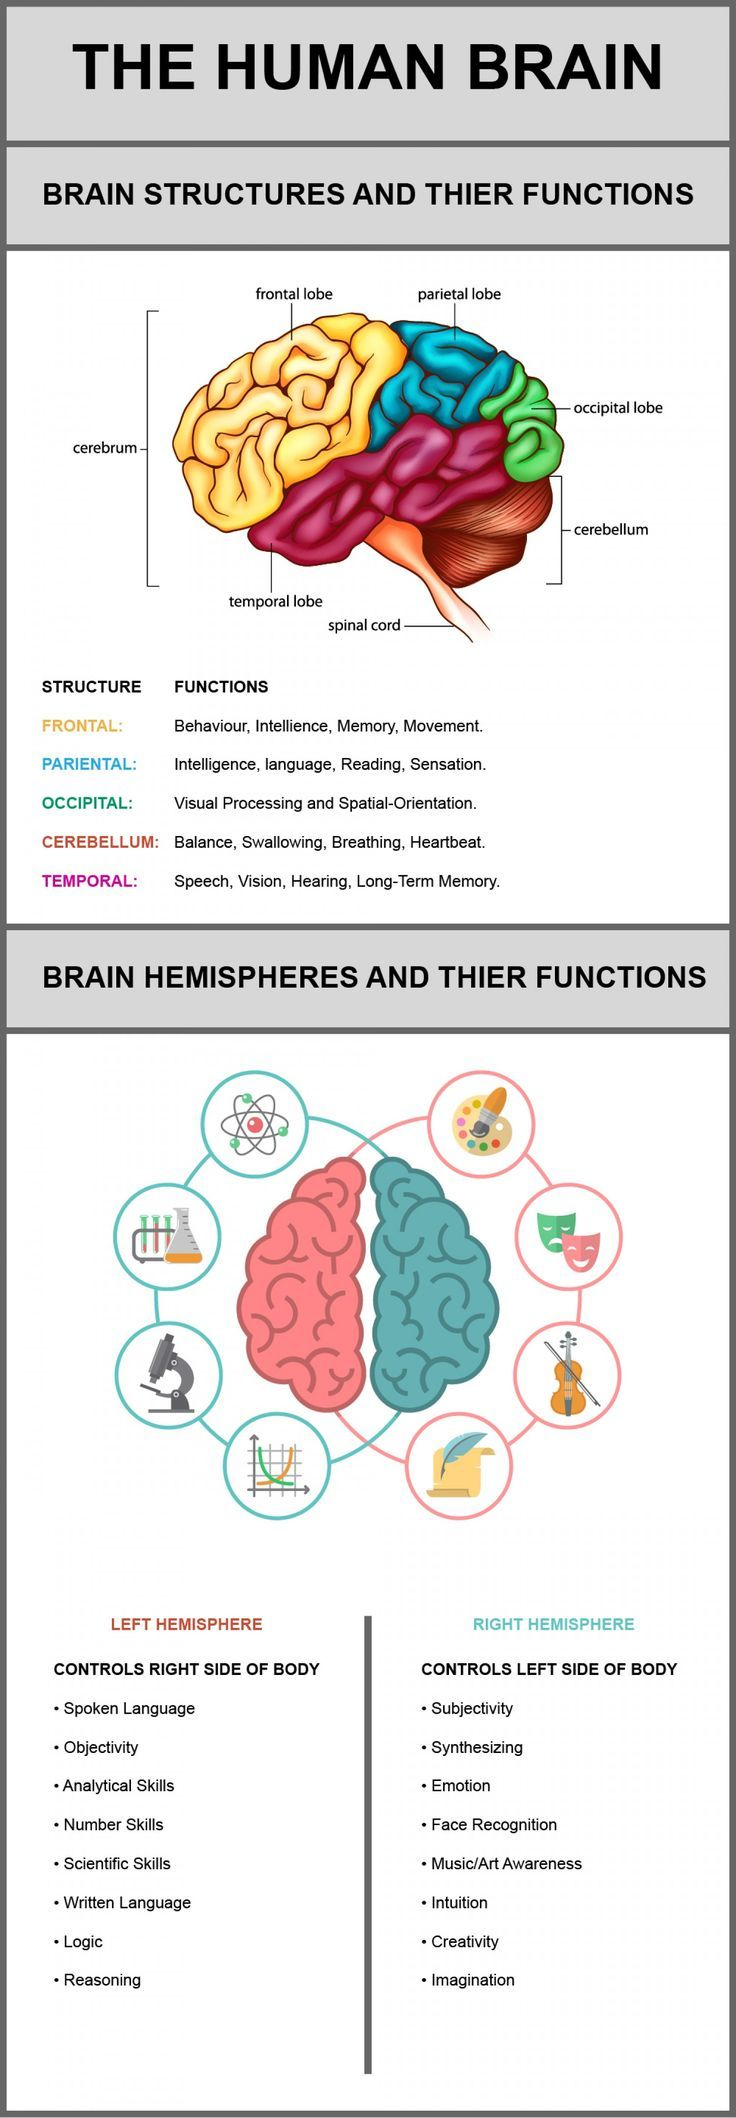 The Human Brain Its Structures and Their Functions (Infographic The Human Brain Its Structures and Their Functions (Infographic)        The Human Brain Its Structures and Their Functions (Infographic)